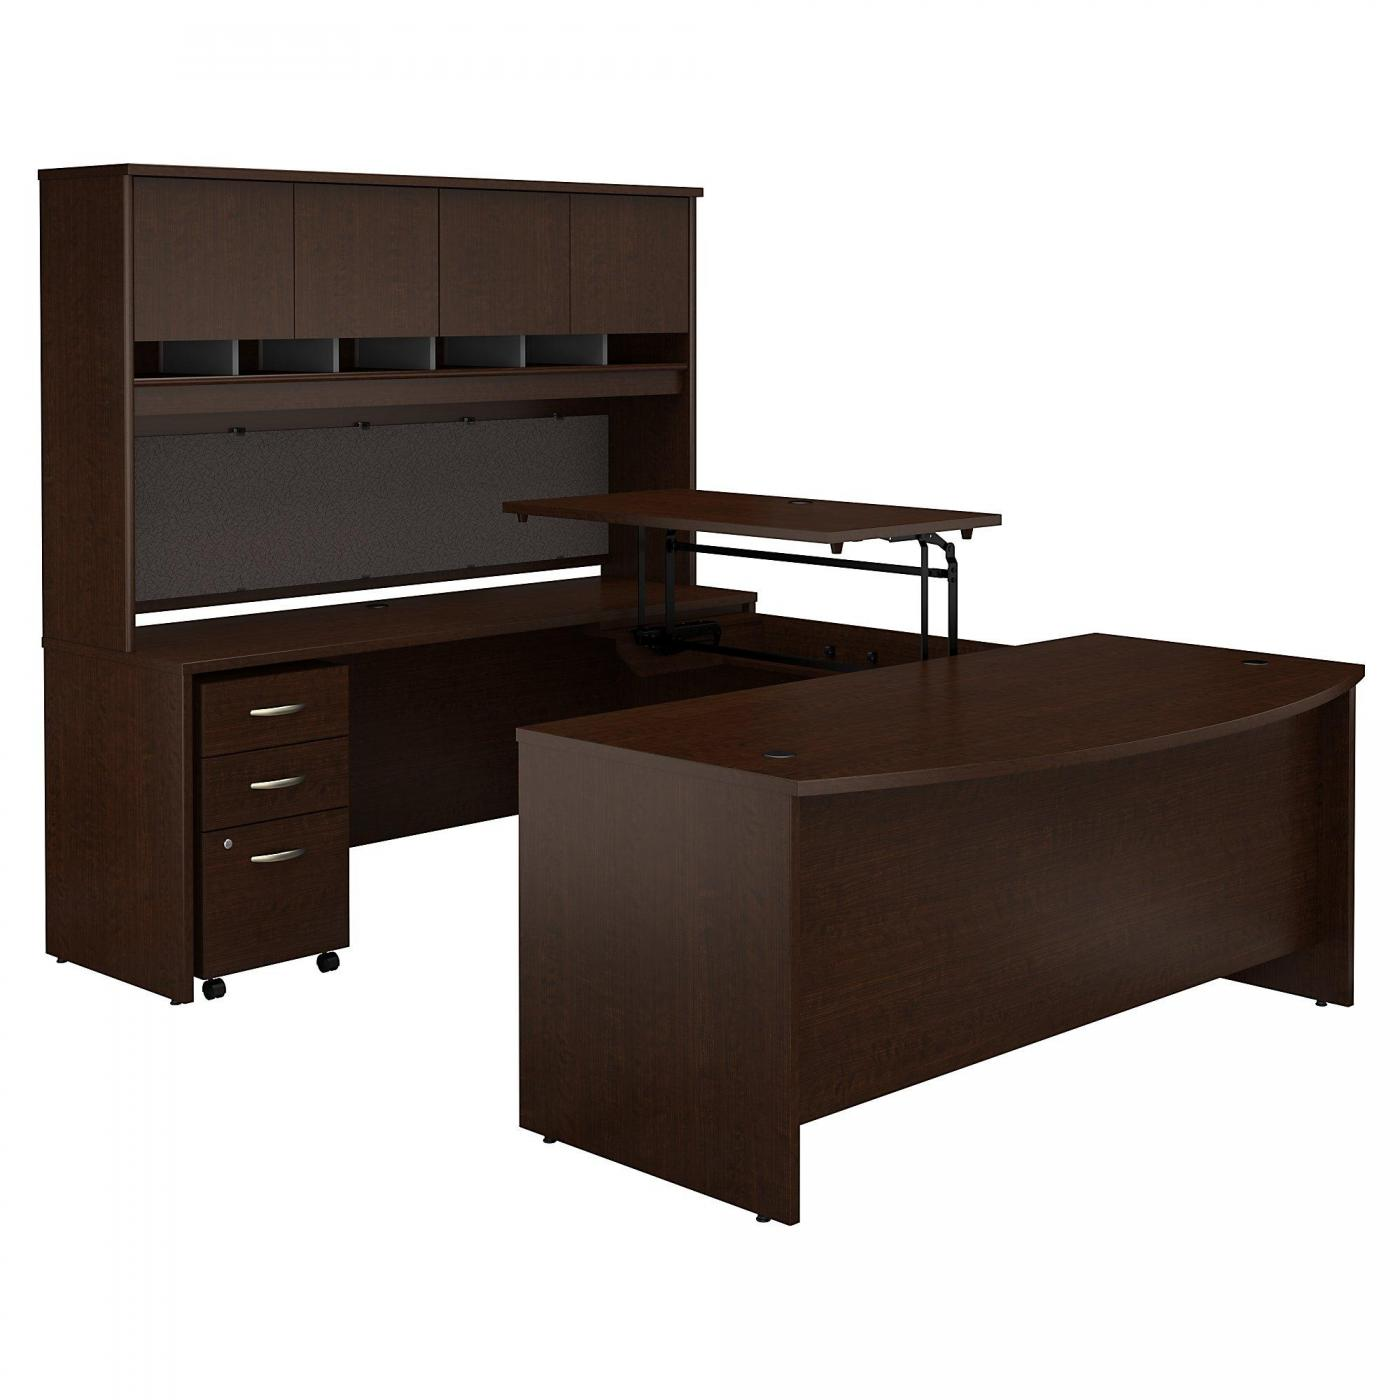 </b></font><b>BUSH BUSINESS FURNITURE SERIES C 72W X 36D 3 POSITION SIT TO STAND BOW FRONT U SHAPED DESK WITH HUTCH AND MOBILE FILE CABINET. FREE SHIPPING. VIDEO:</b></font>  VIDEO BELOW. <p>RATING:&#11088;&#11088;&#11088;&#11088;&#11088;</b></font></b>